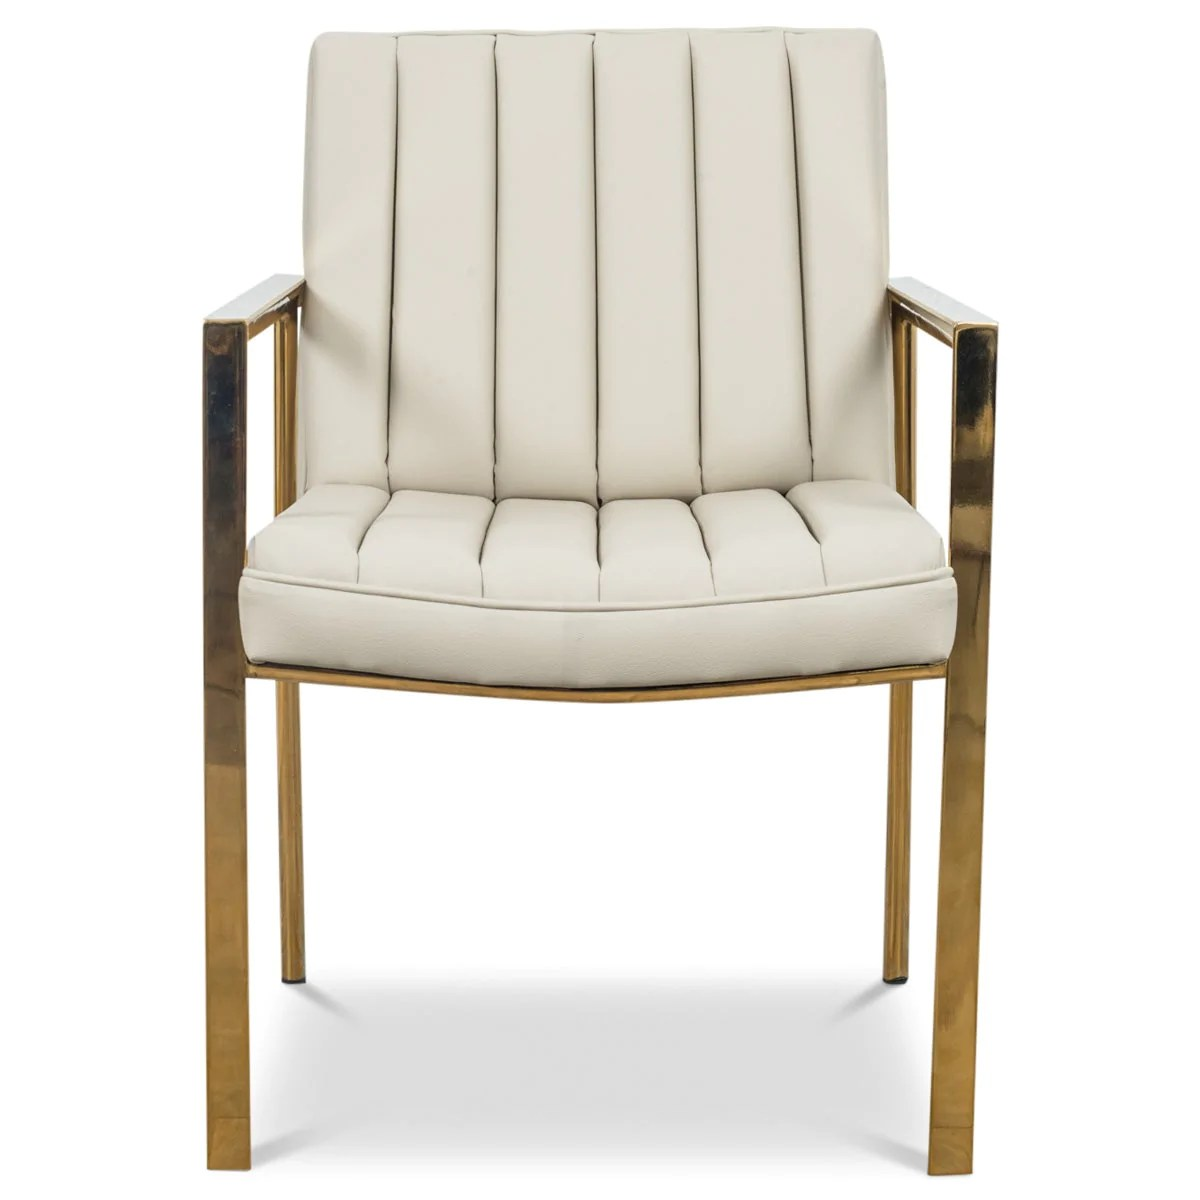 Cream Leather Dining Chairs Argentina Dining Chair Cream Faux Leather Chairs Modshop